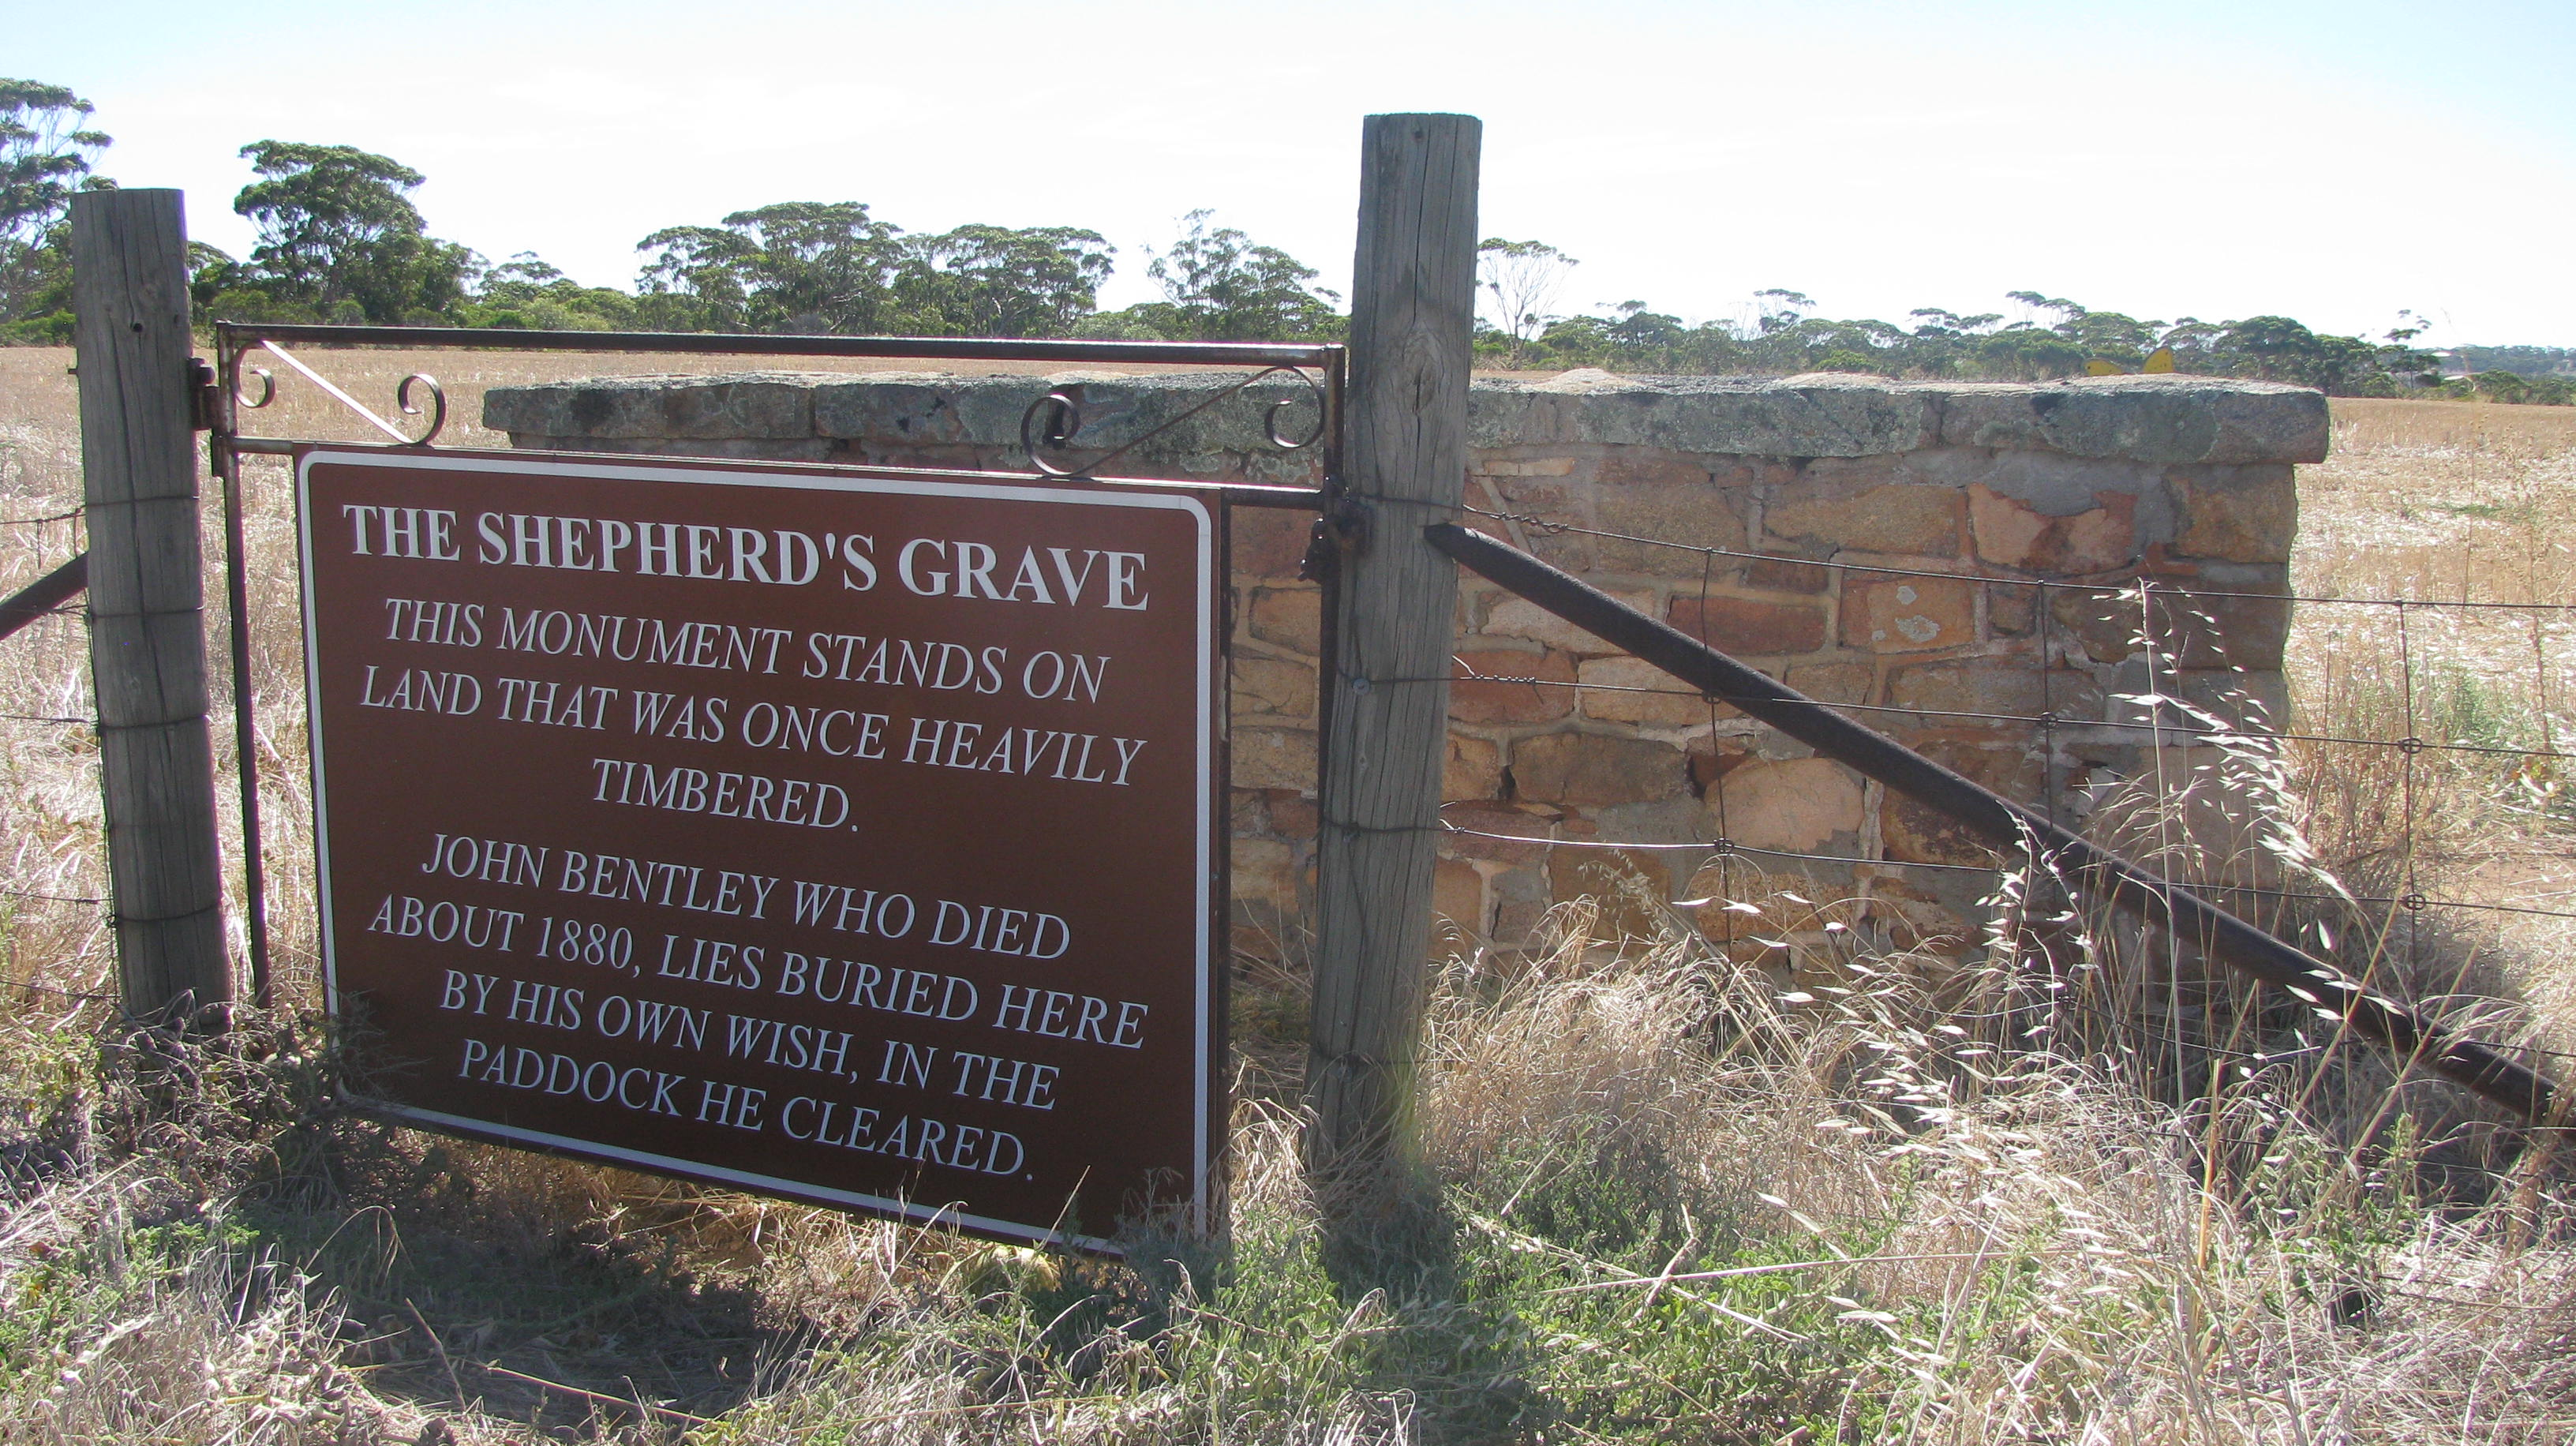 Plaque at the Shepherd's Grave, Goomalling WA